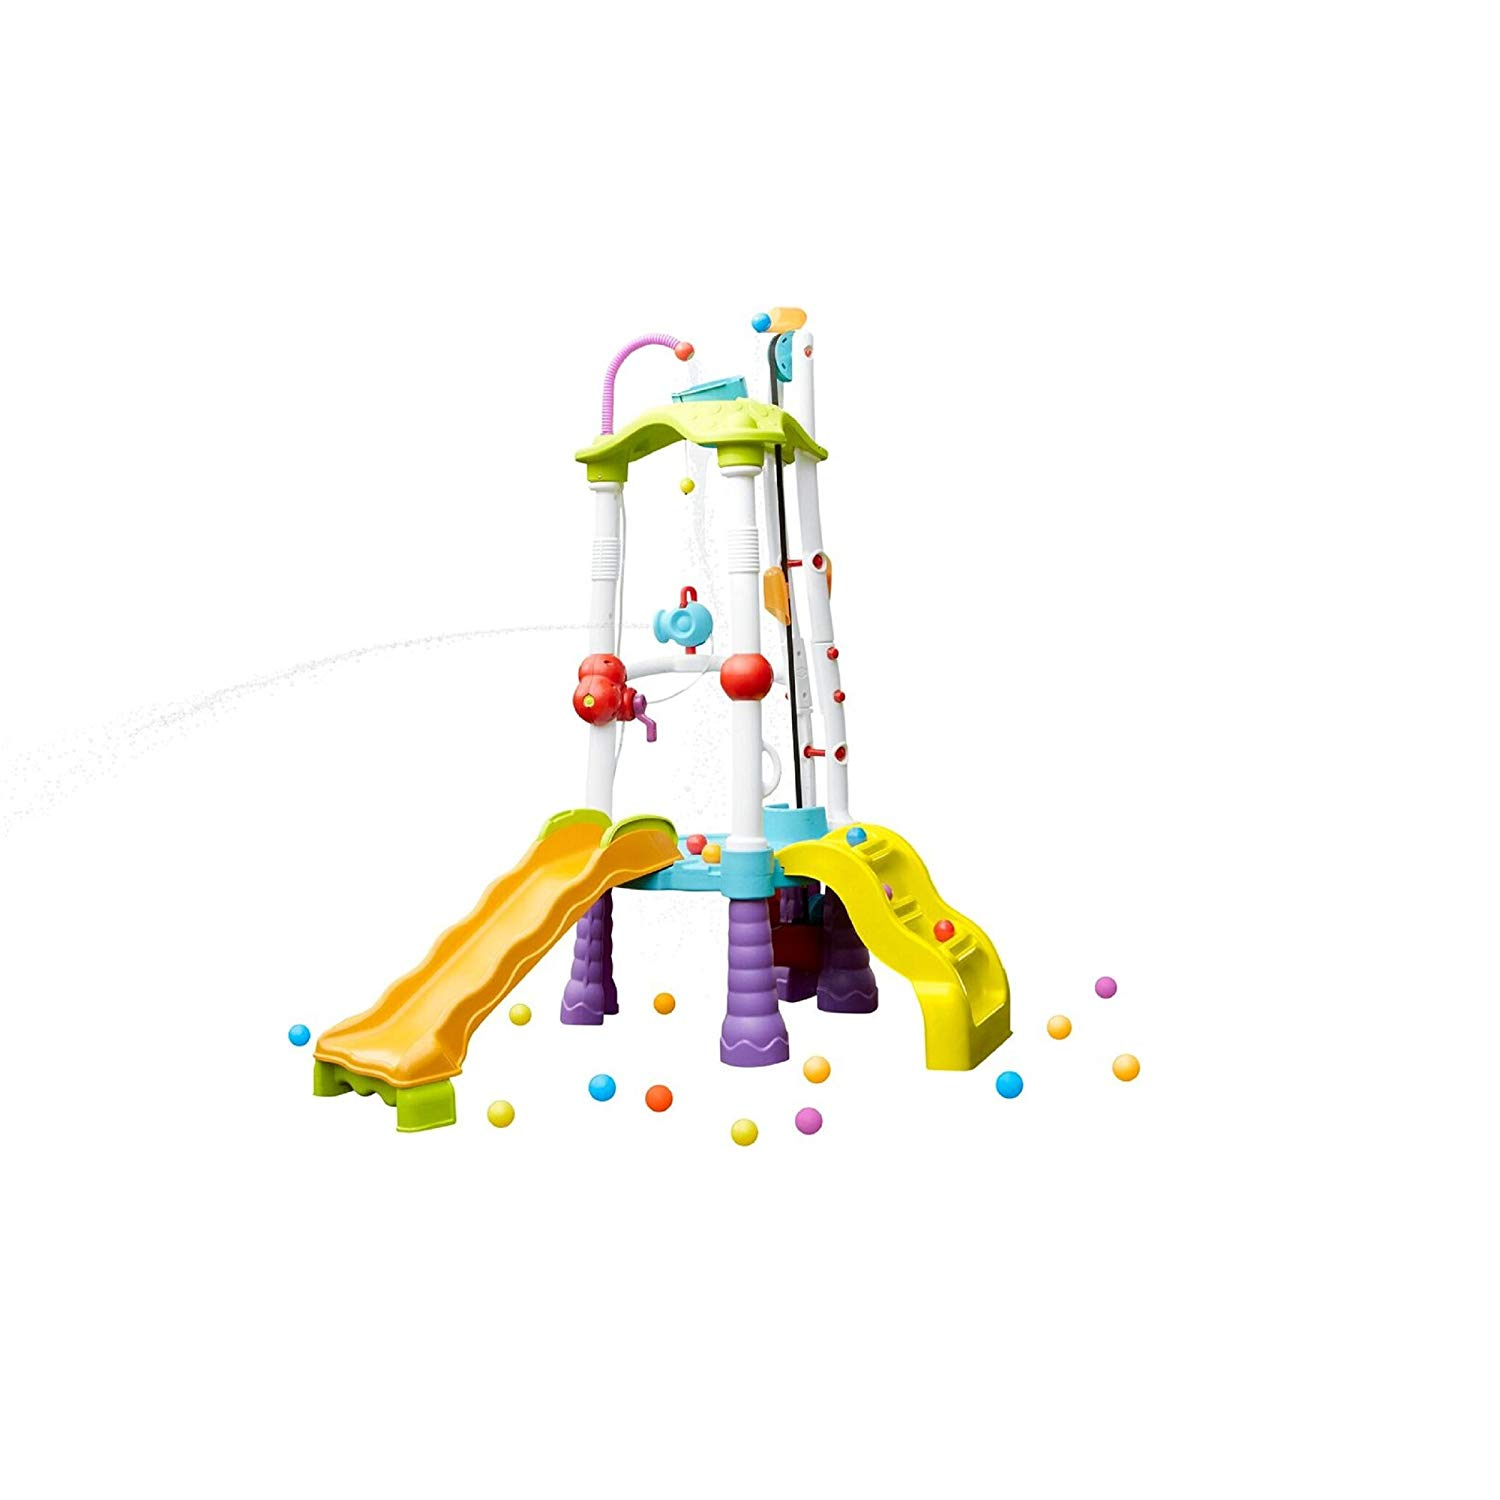 Little Tikes Fun Zone Tumblin' Tower Climber Only $149.99